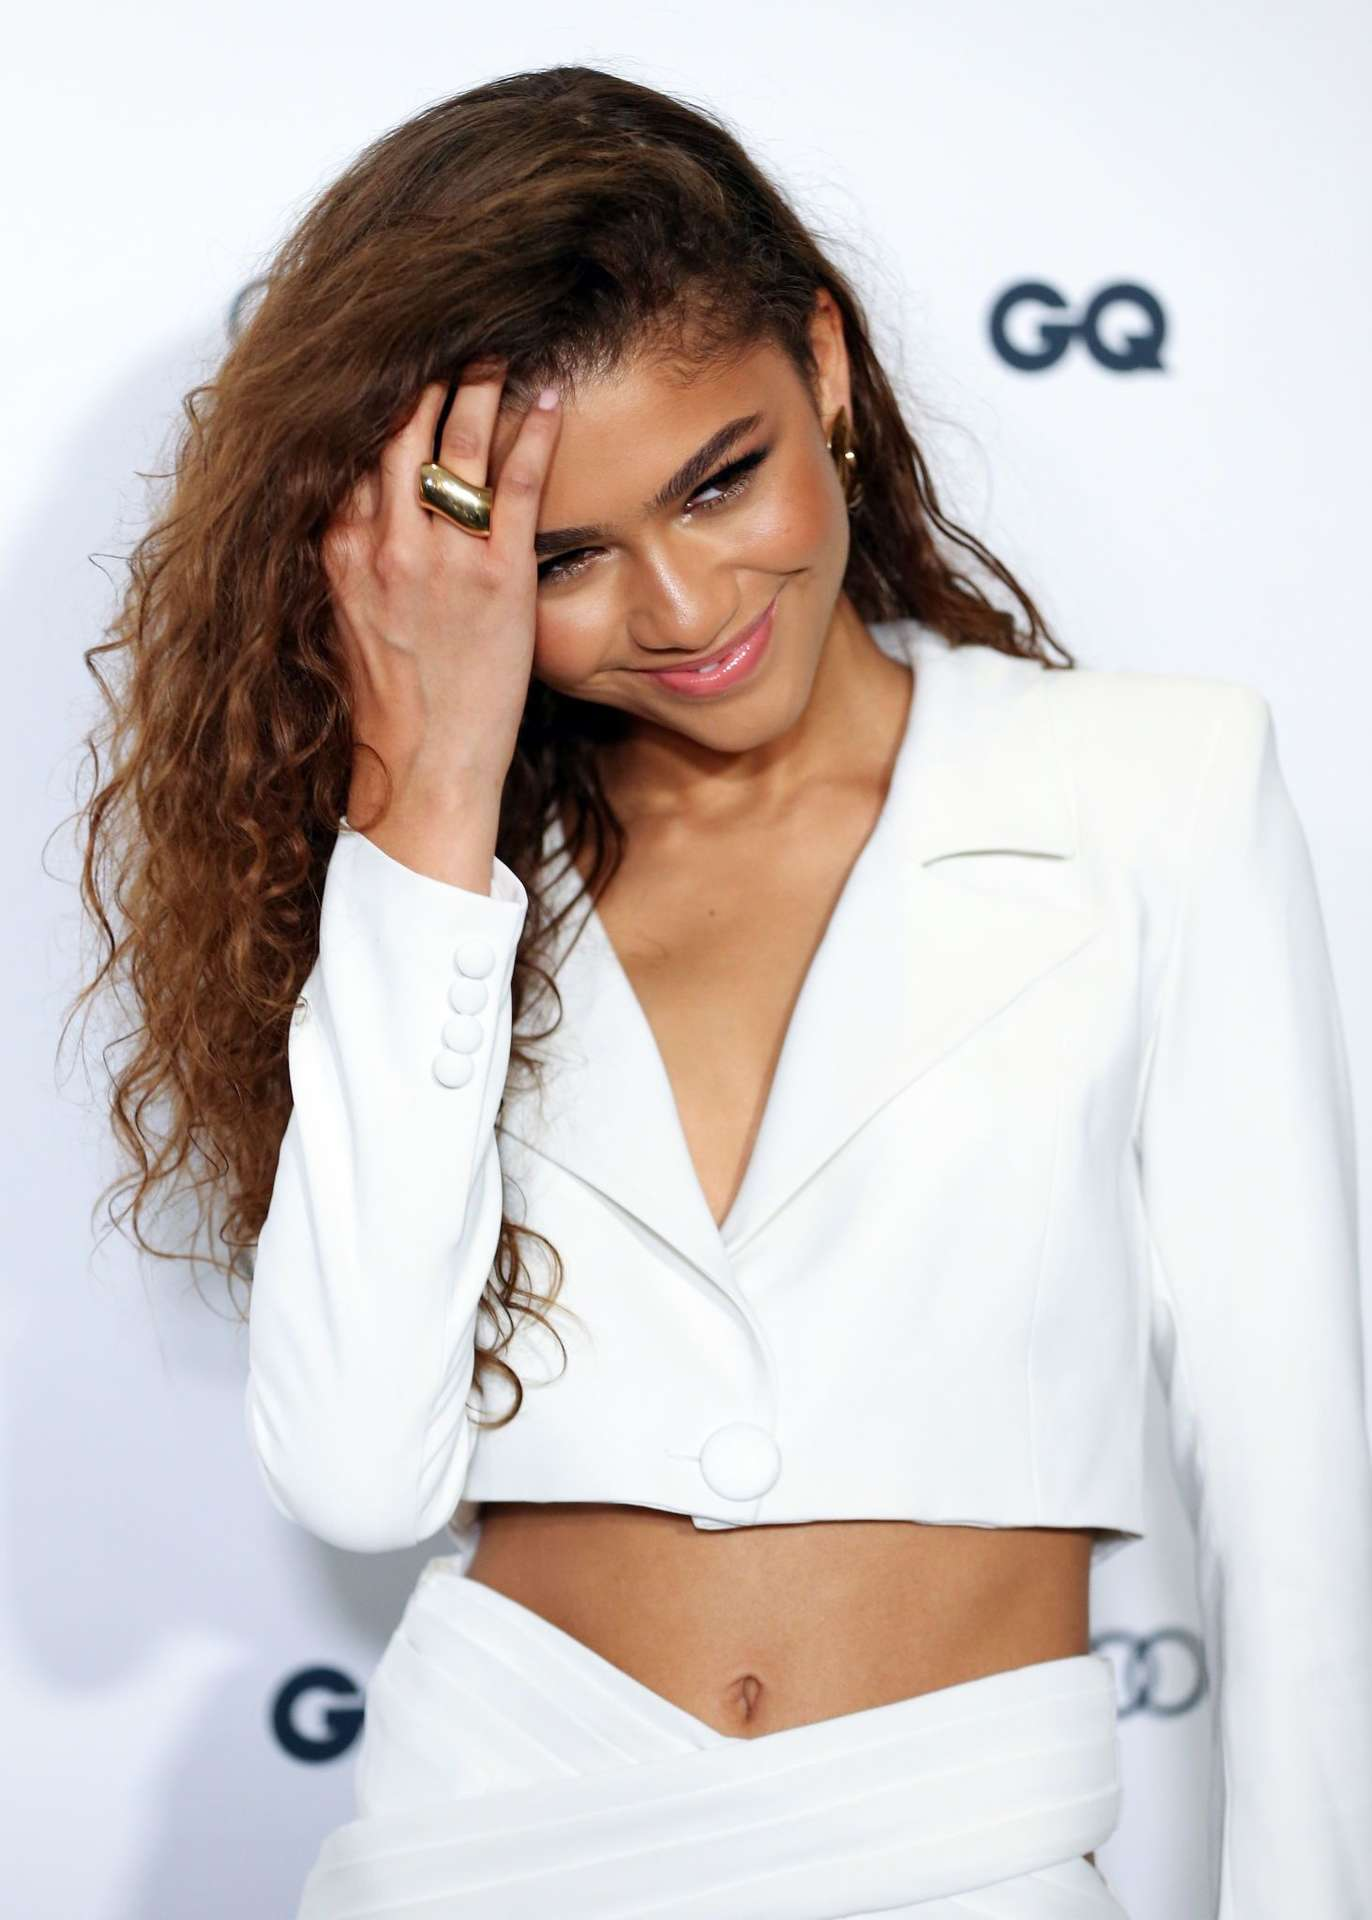 Zendaya Coleman at GQ Men of The Year Awards 2019 in Sydney